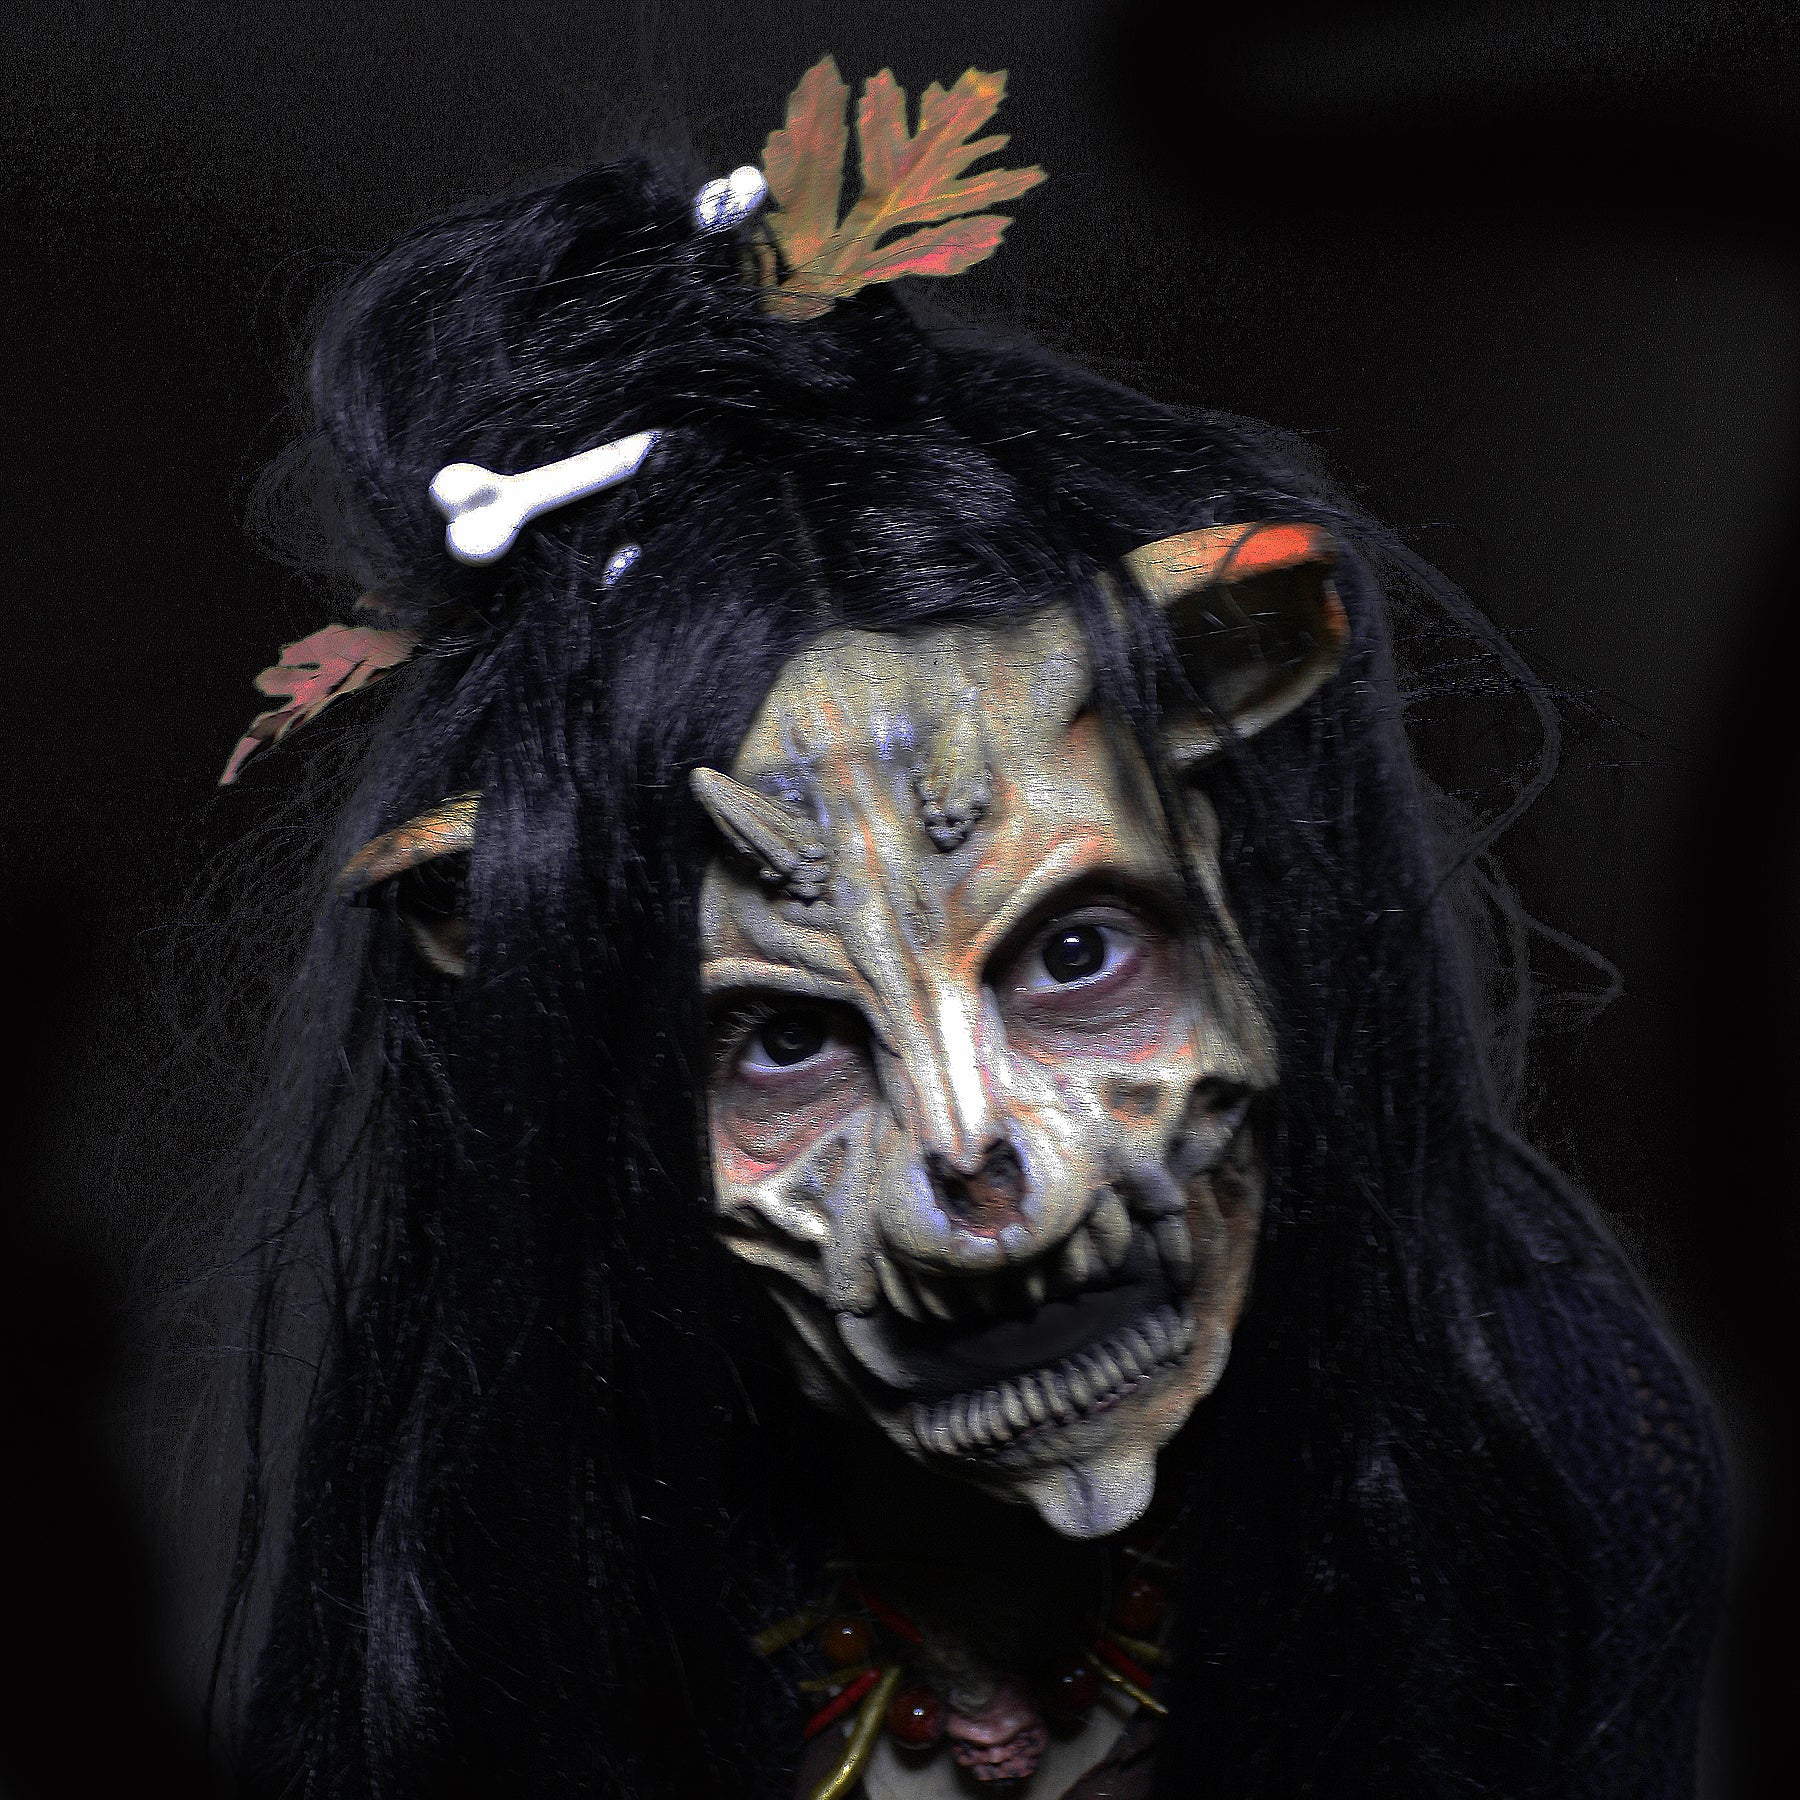 nymph mask, nymph, foam latex mask, satyr mask, prosthetic